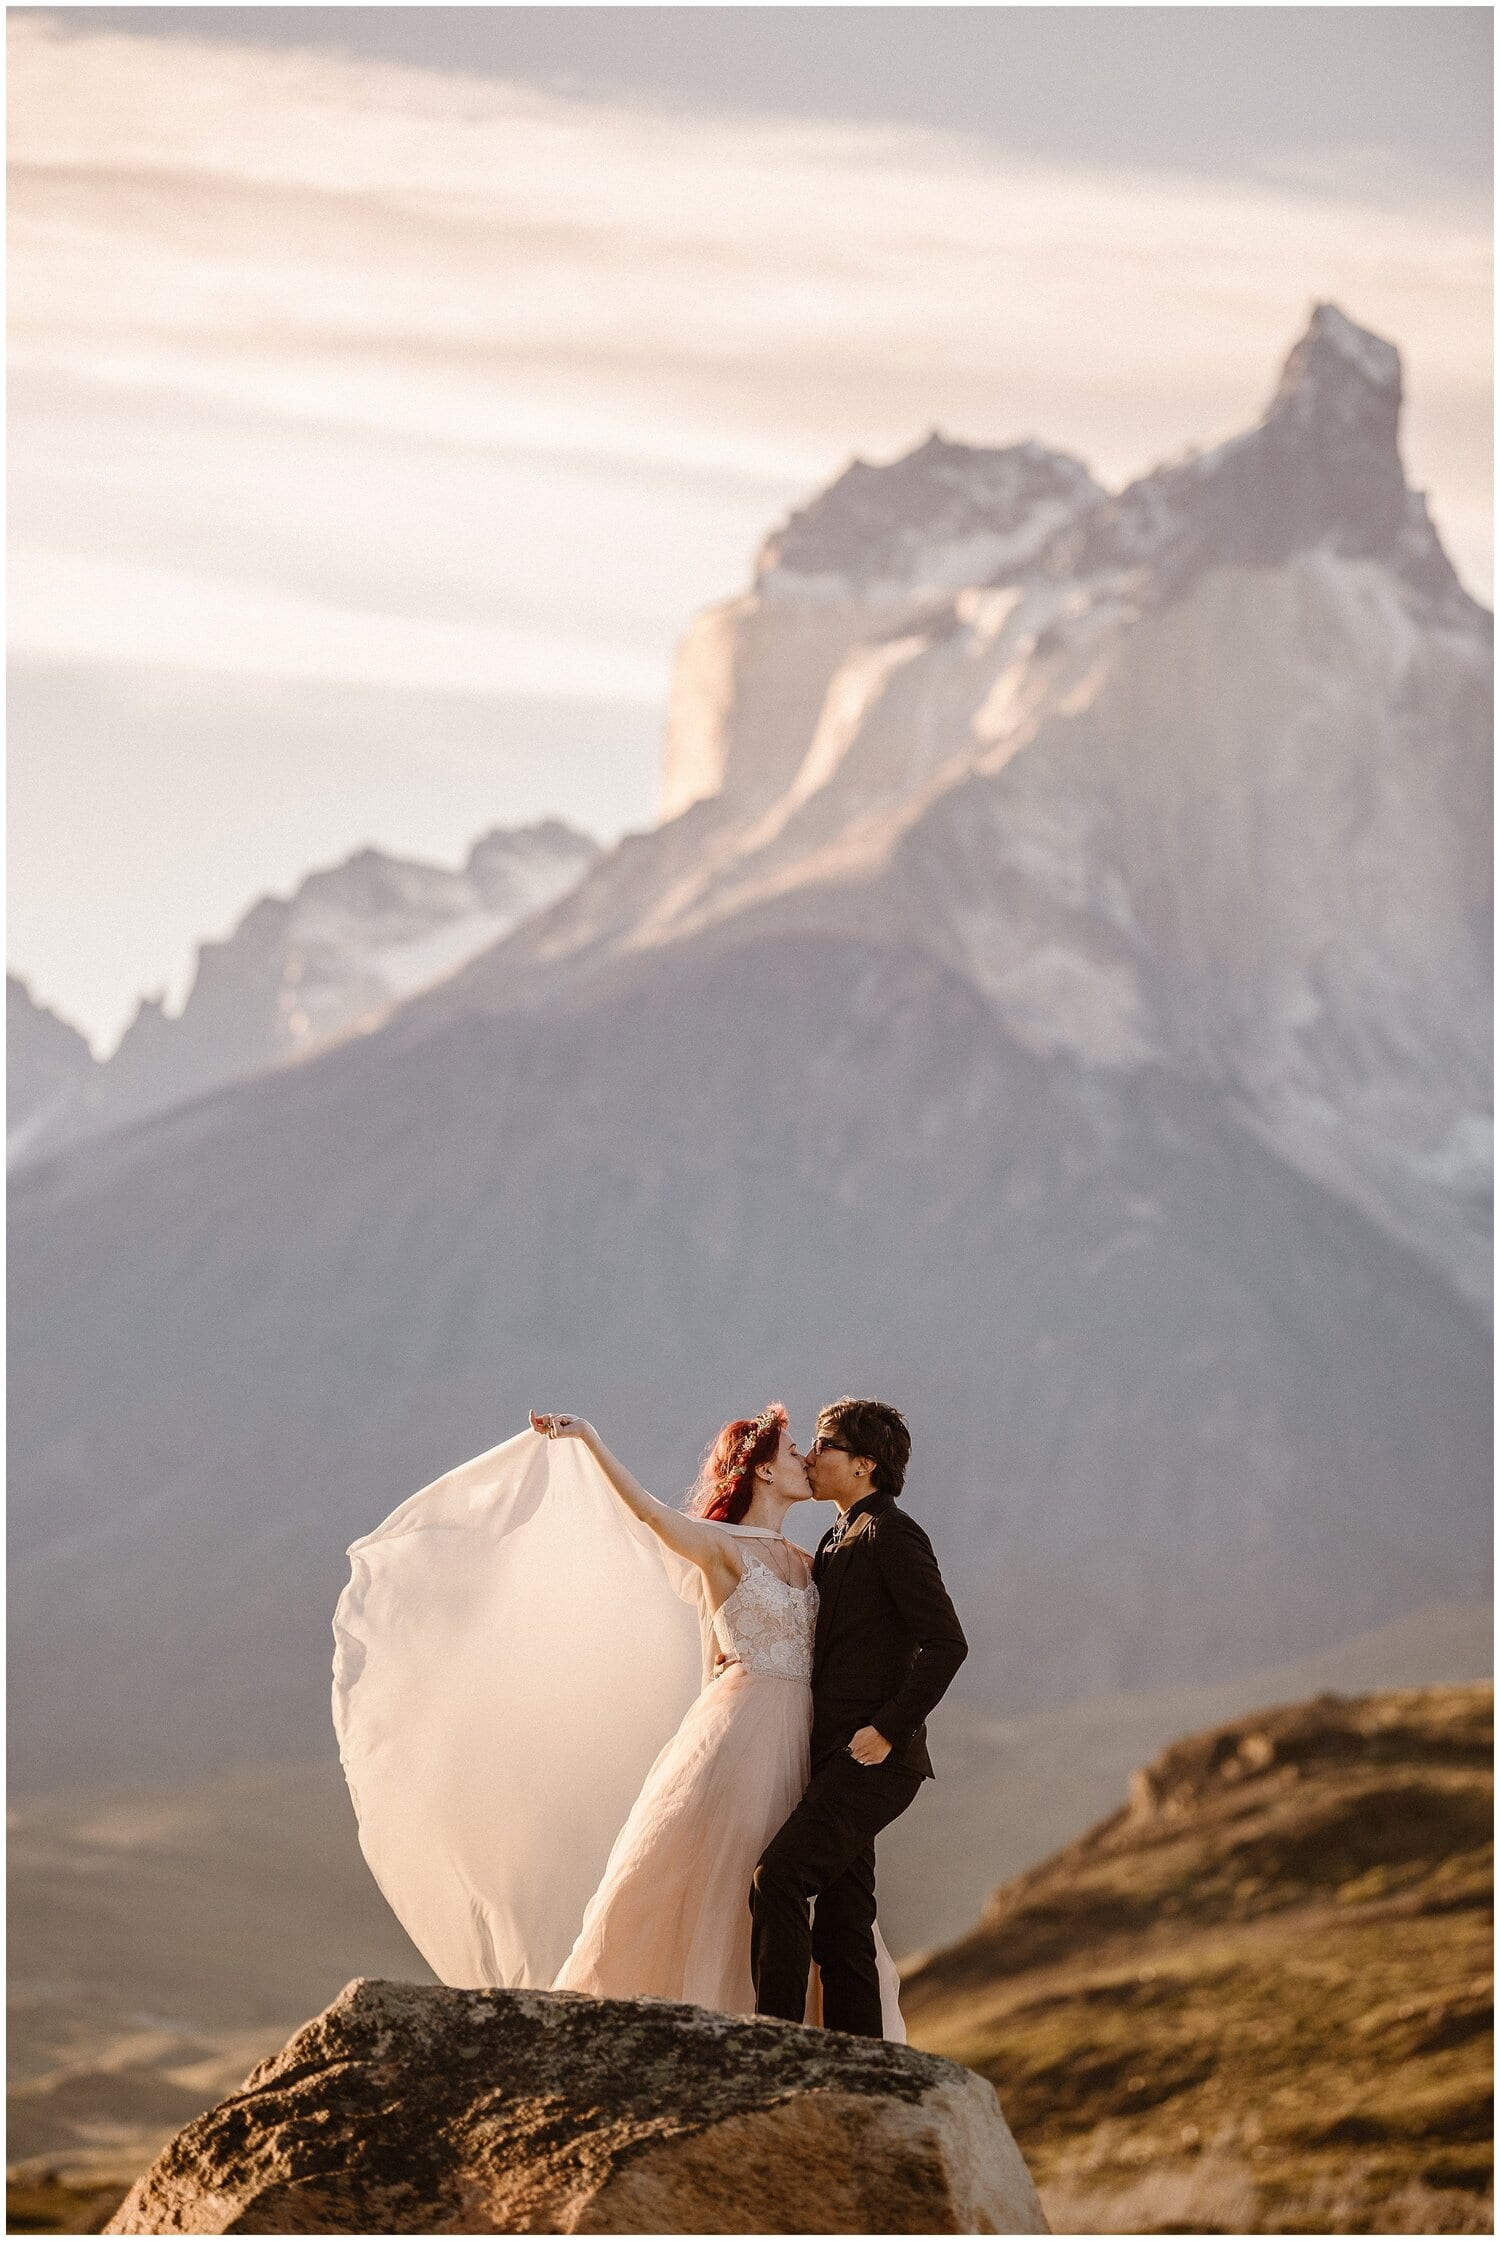 Couple kiss on their wedding day in Patagonia.